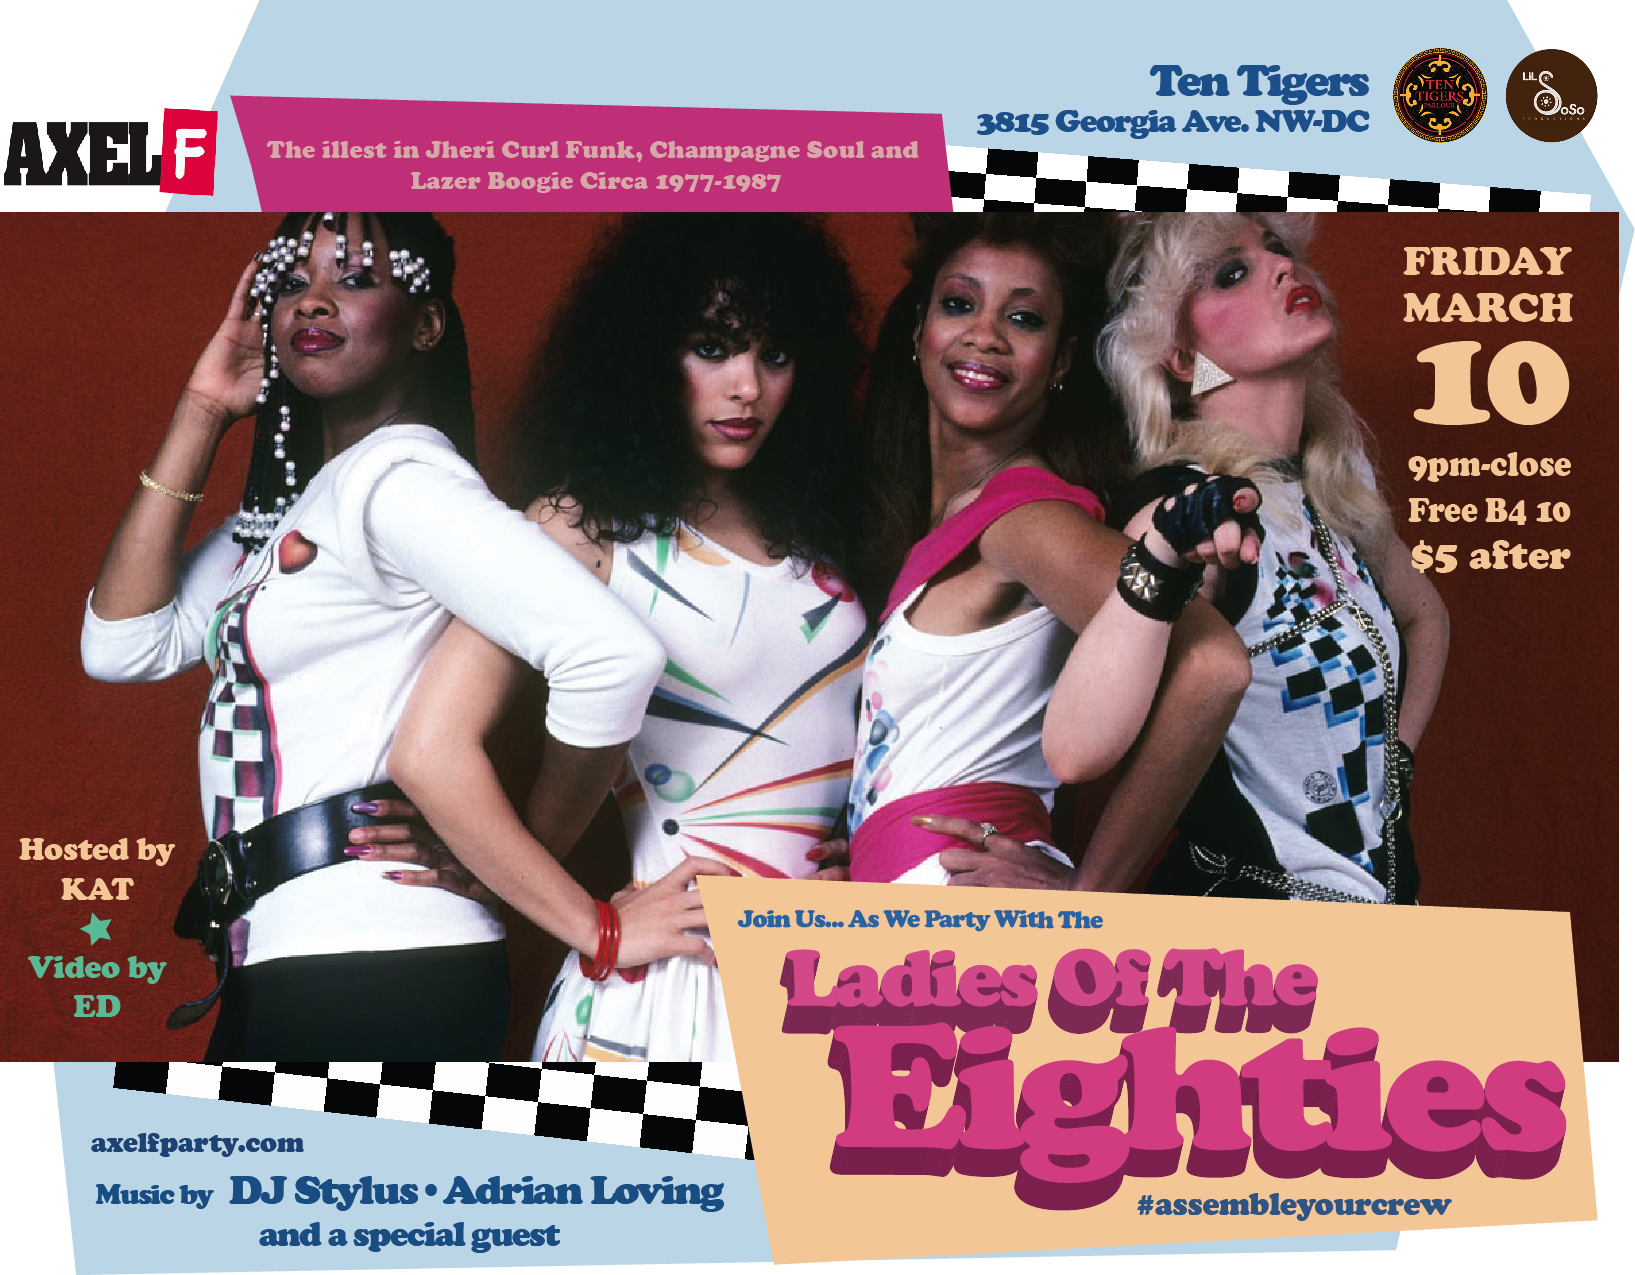 AXEL F. PRESENTS: LADIES OF THE 80'S